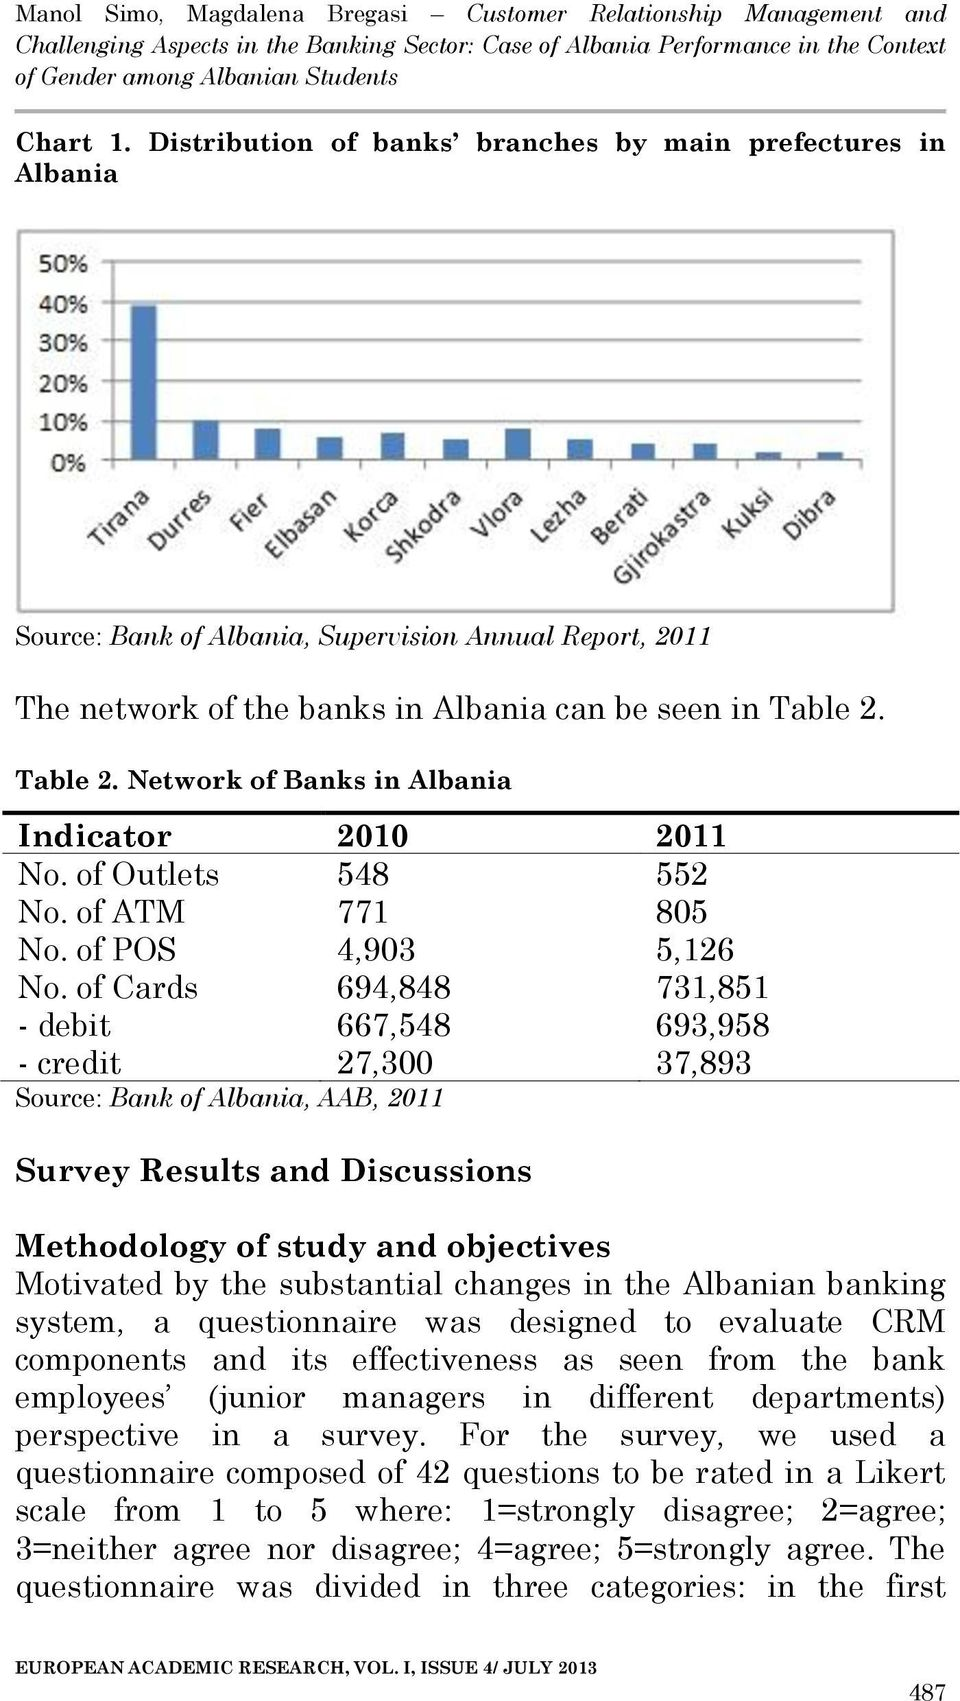 of Cards 694,848 731,851 - debit 667,548 693,958 - credit 27,300 37,893 Source: Bank of Albania, AAB, 2011 Survey Results and Discussions Methodology of study and objectives Motivated by the